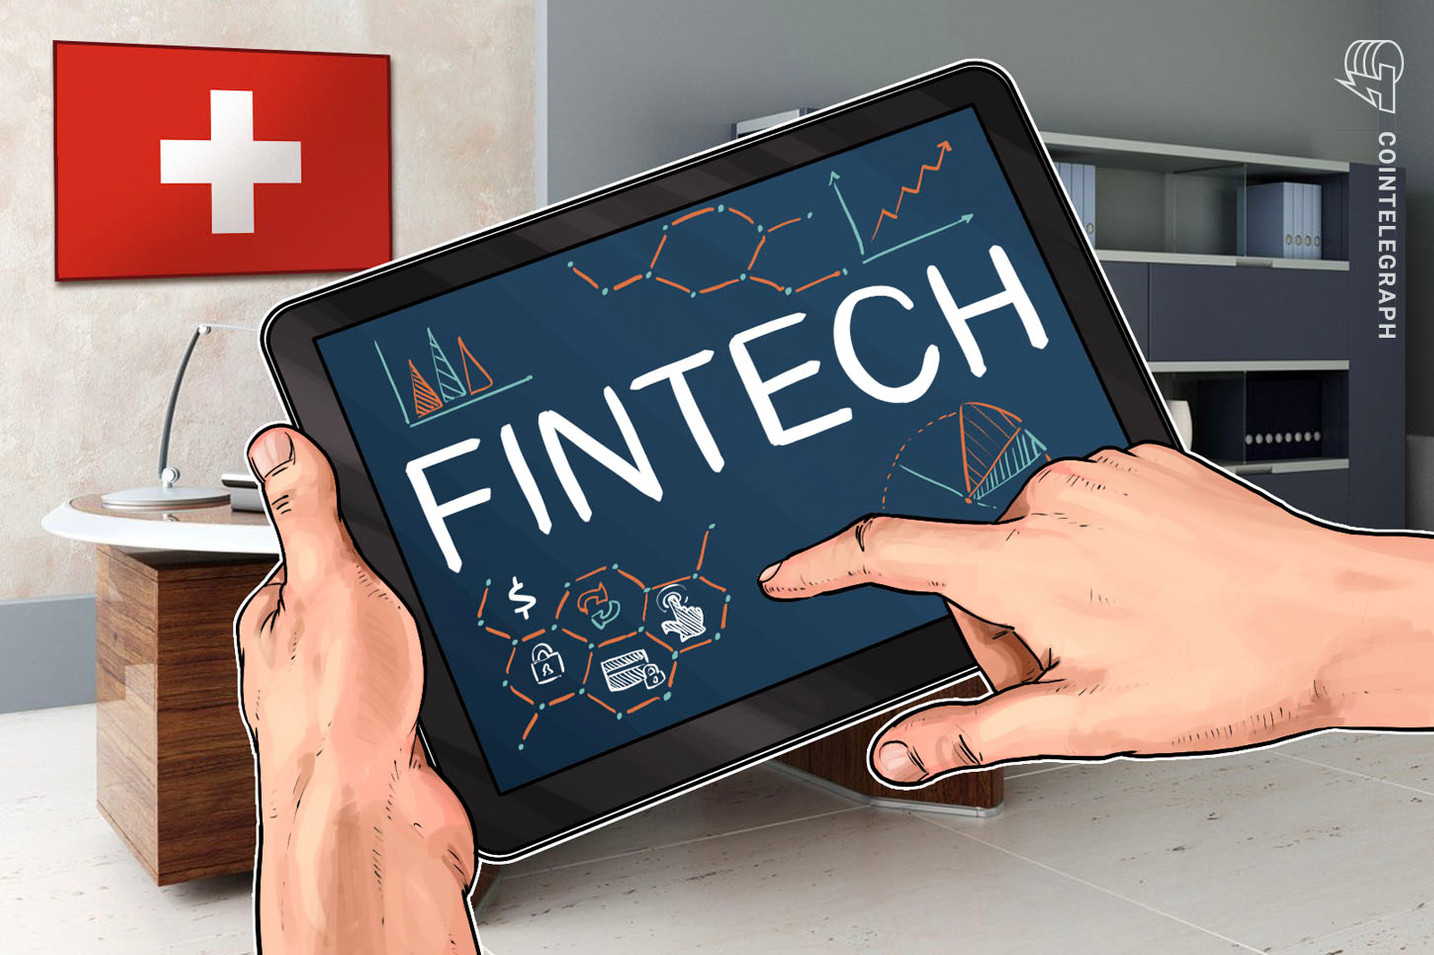 Report: Swiss Fintech Market Grew by 62 Percent in 2018